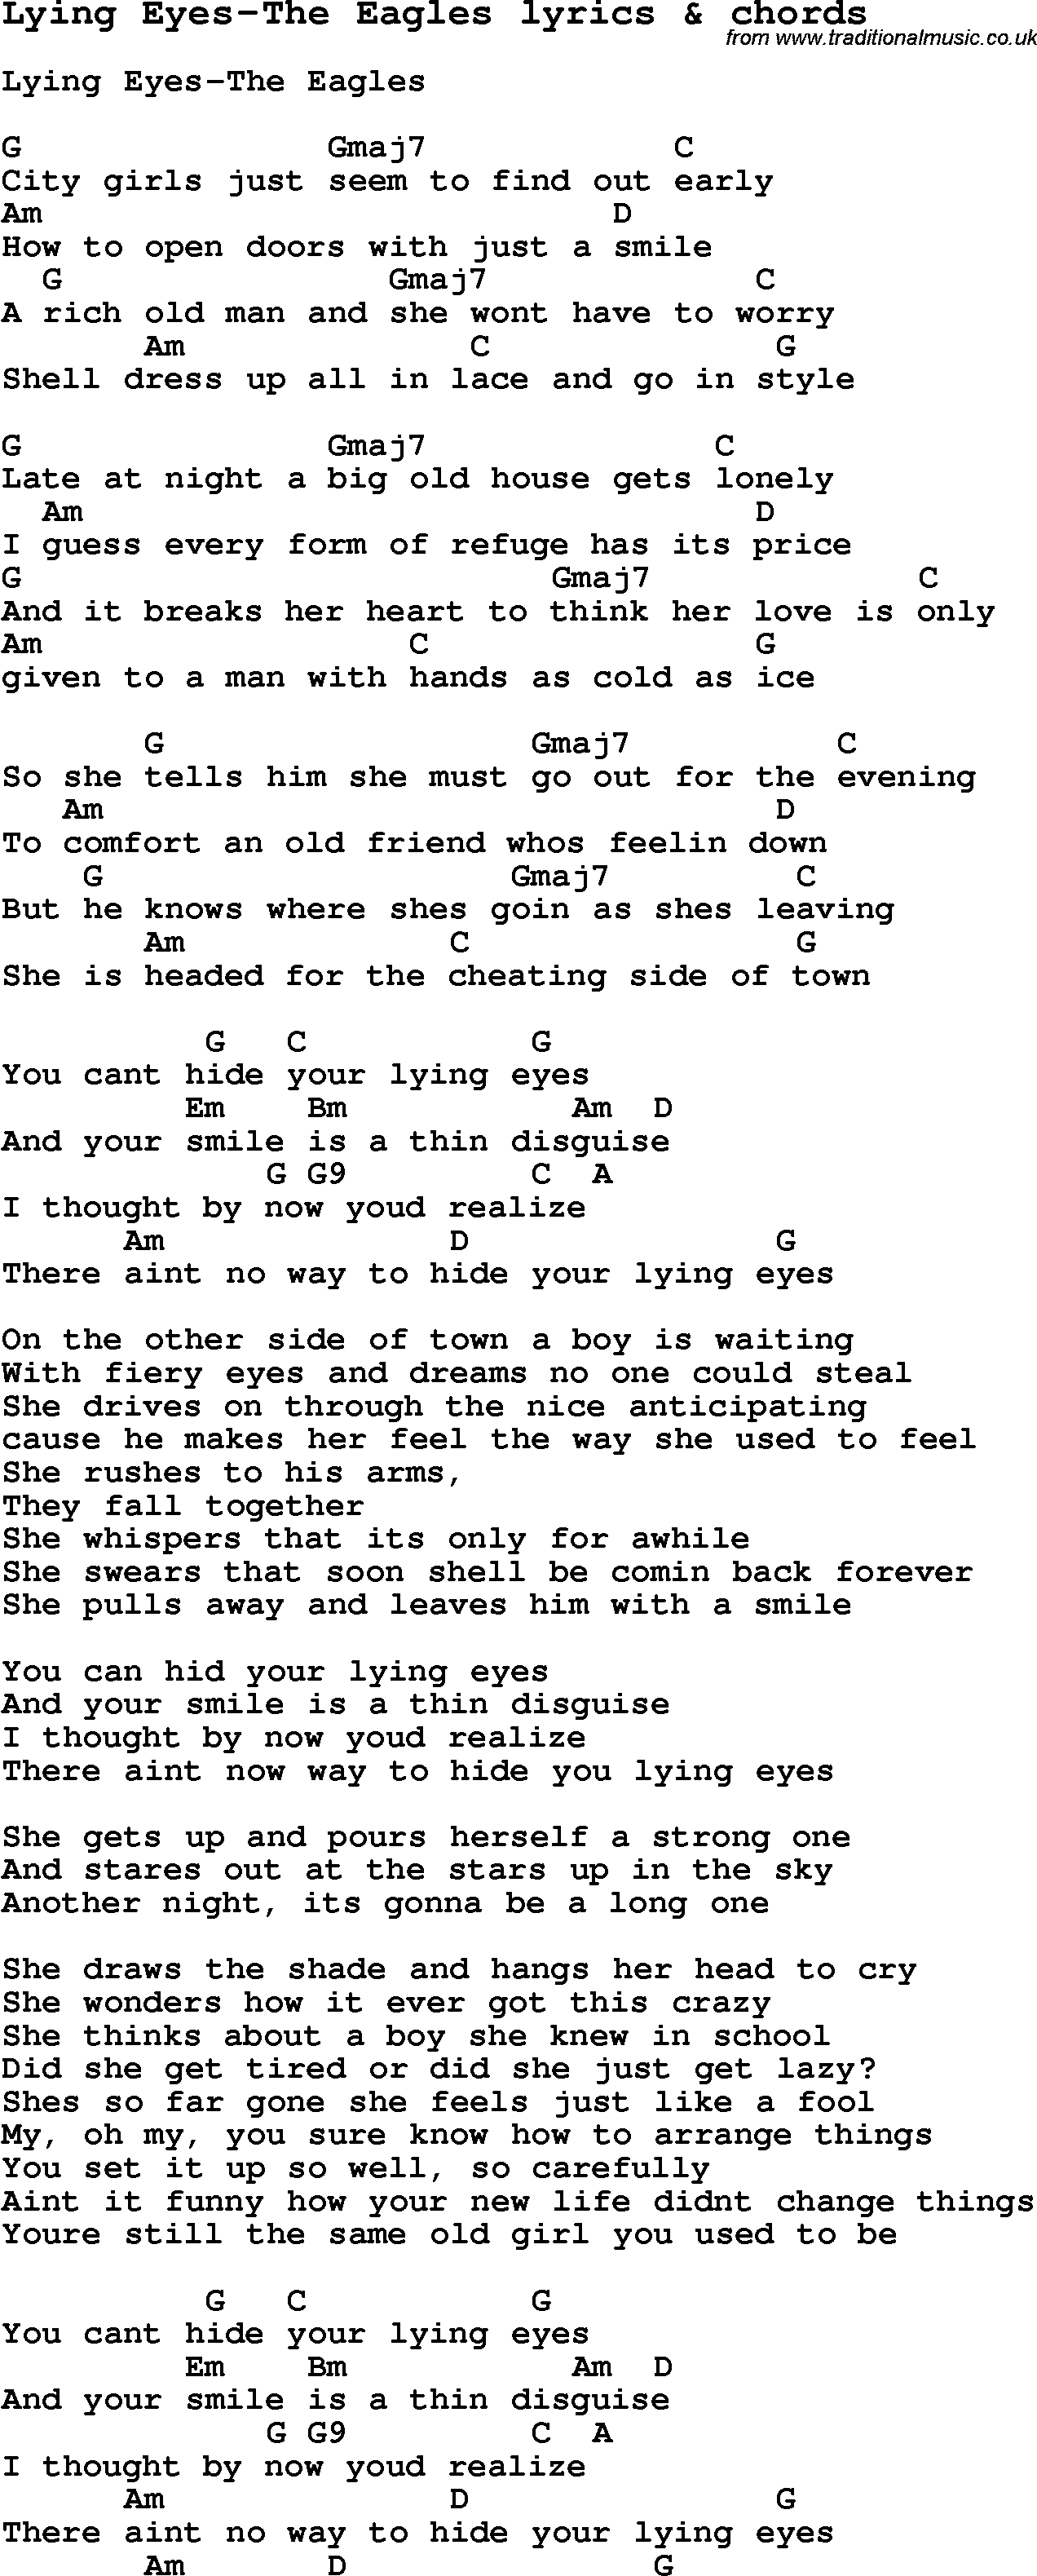 Love Song Lyrics For Lying Eyes The Eagles With Chords For Ukulele